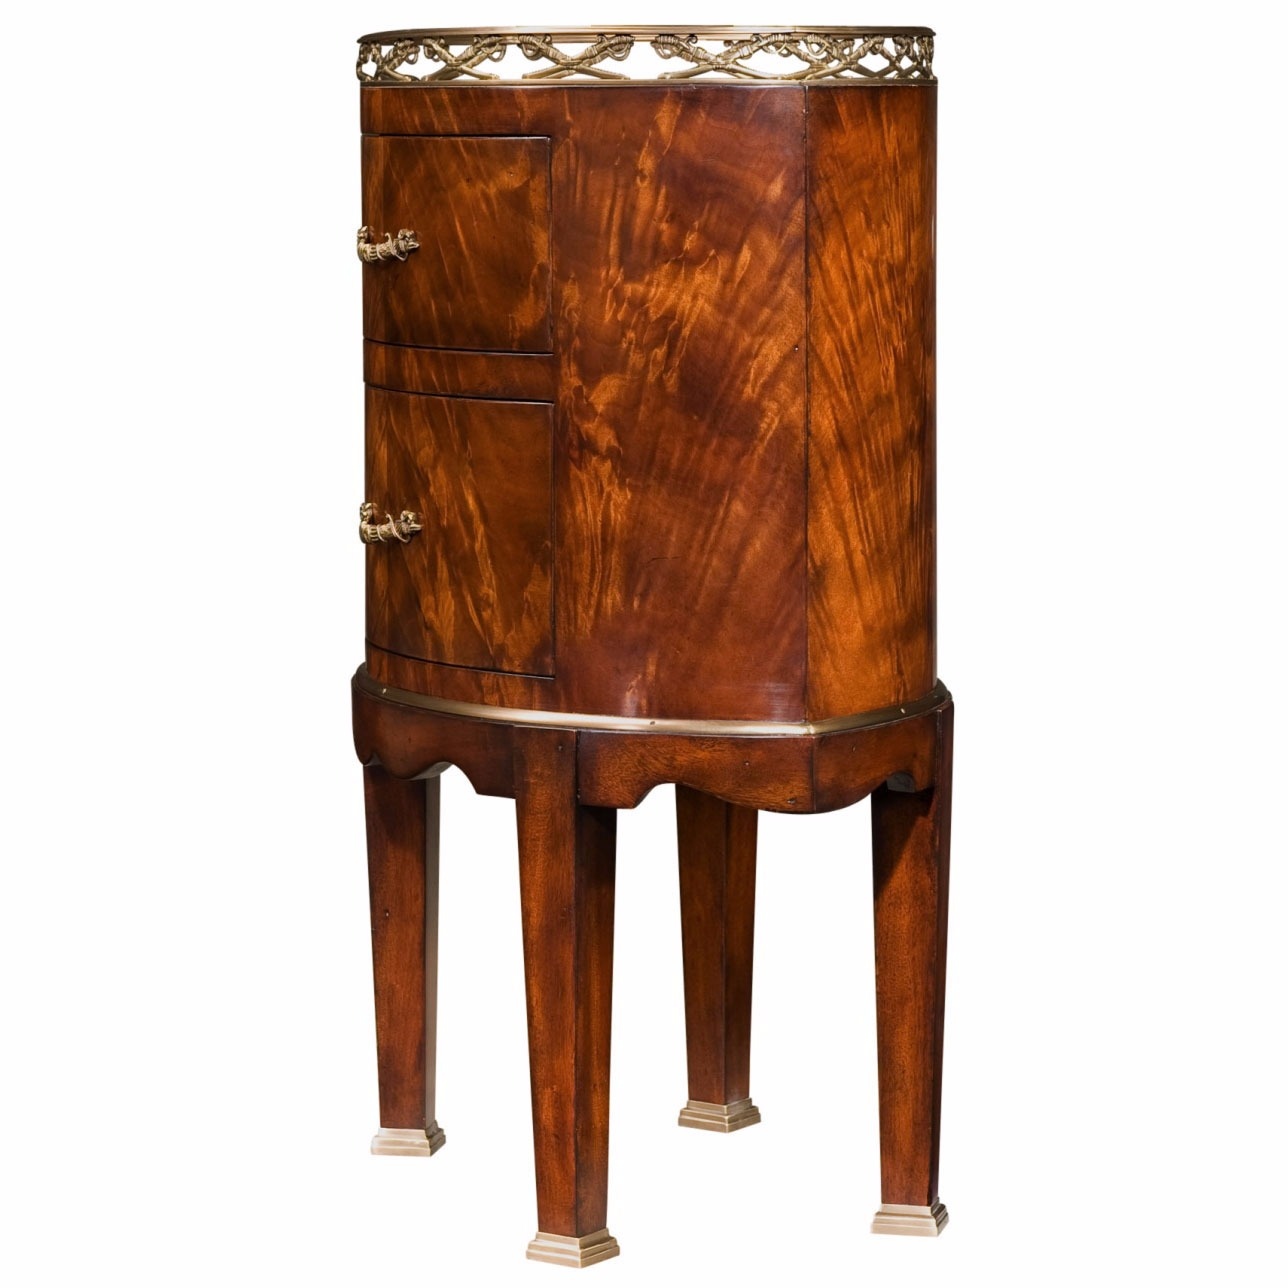 Althorp mahogany lamp table or bedside chest lamp side tables althorp mahogany lamp table or bedside chest geotapseo Gallery